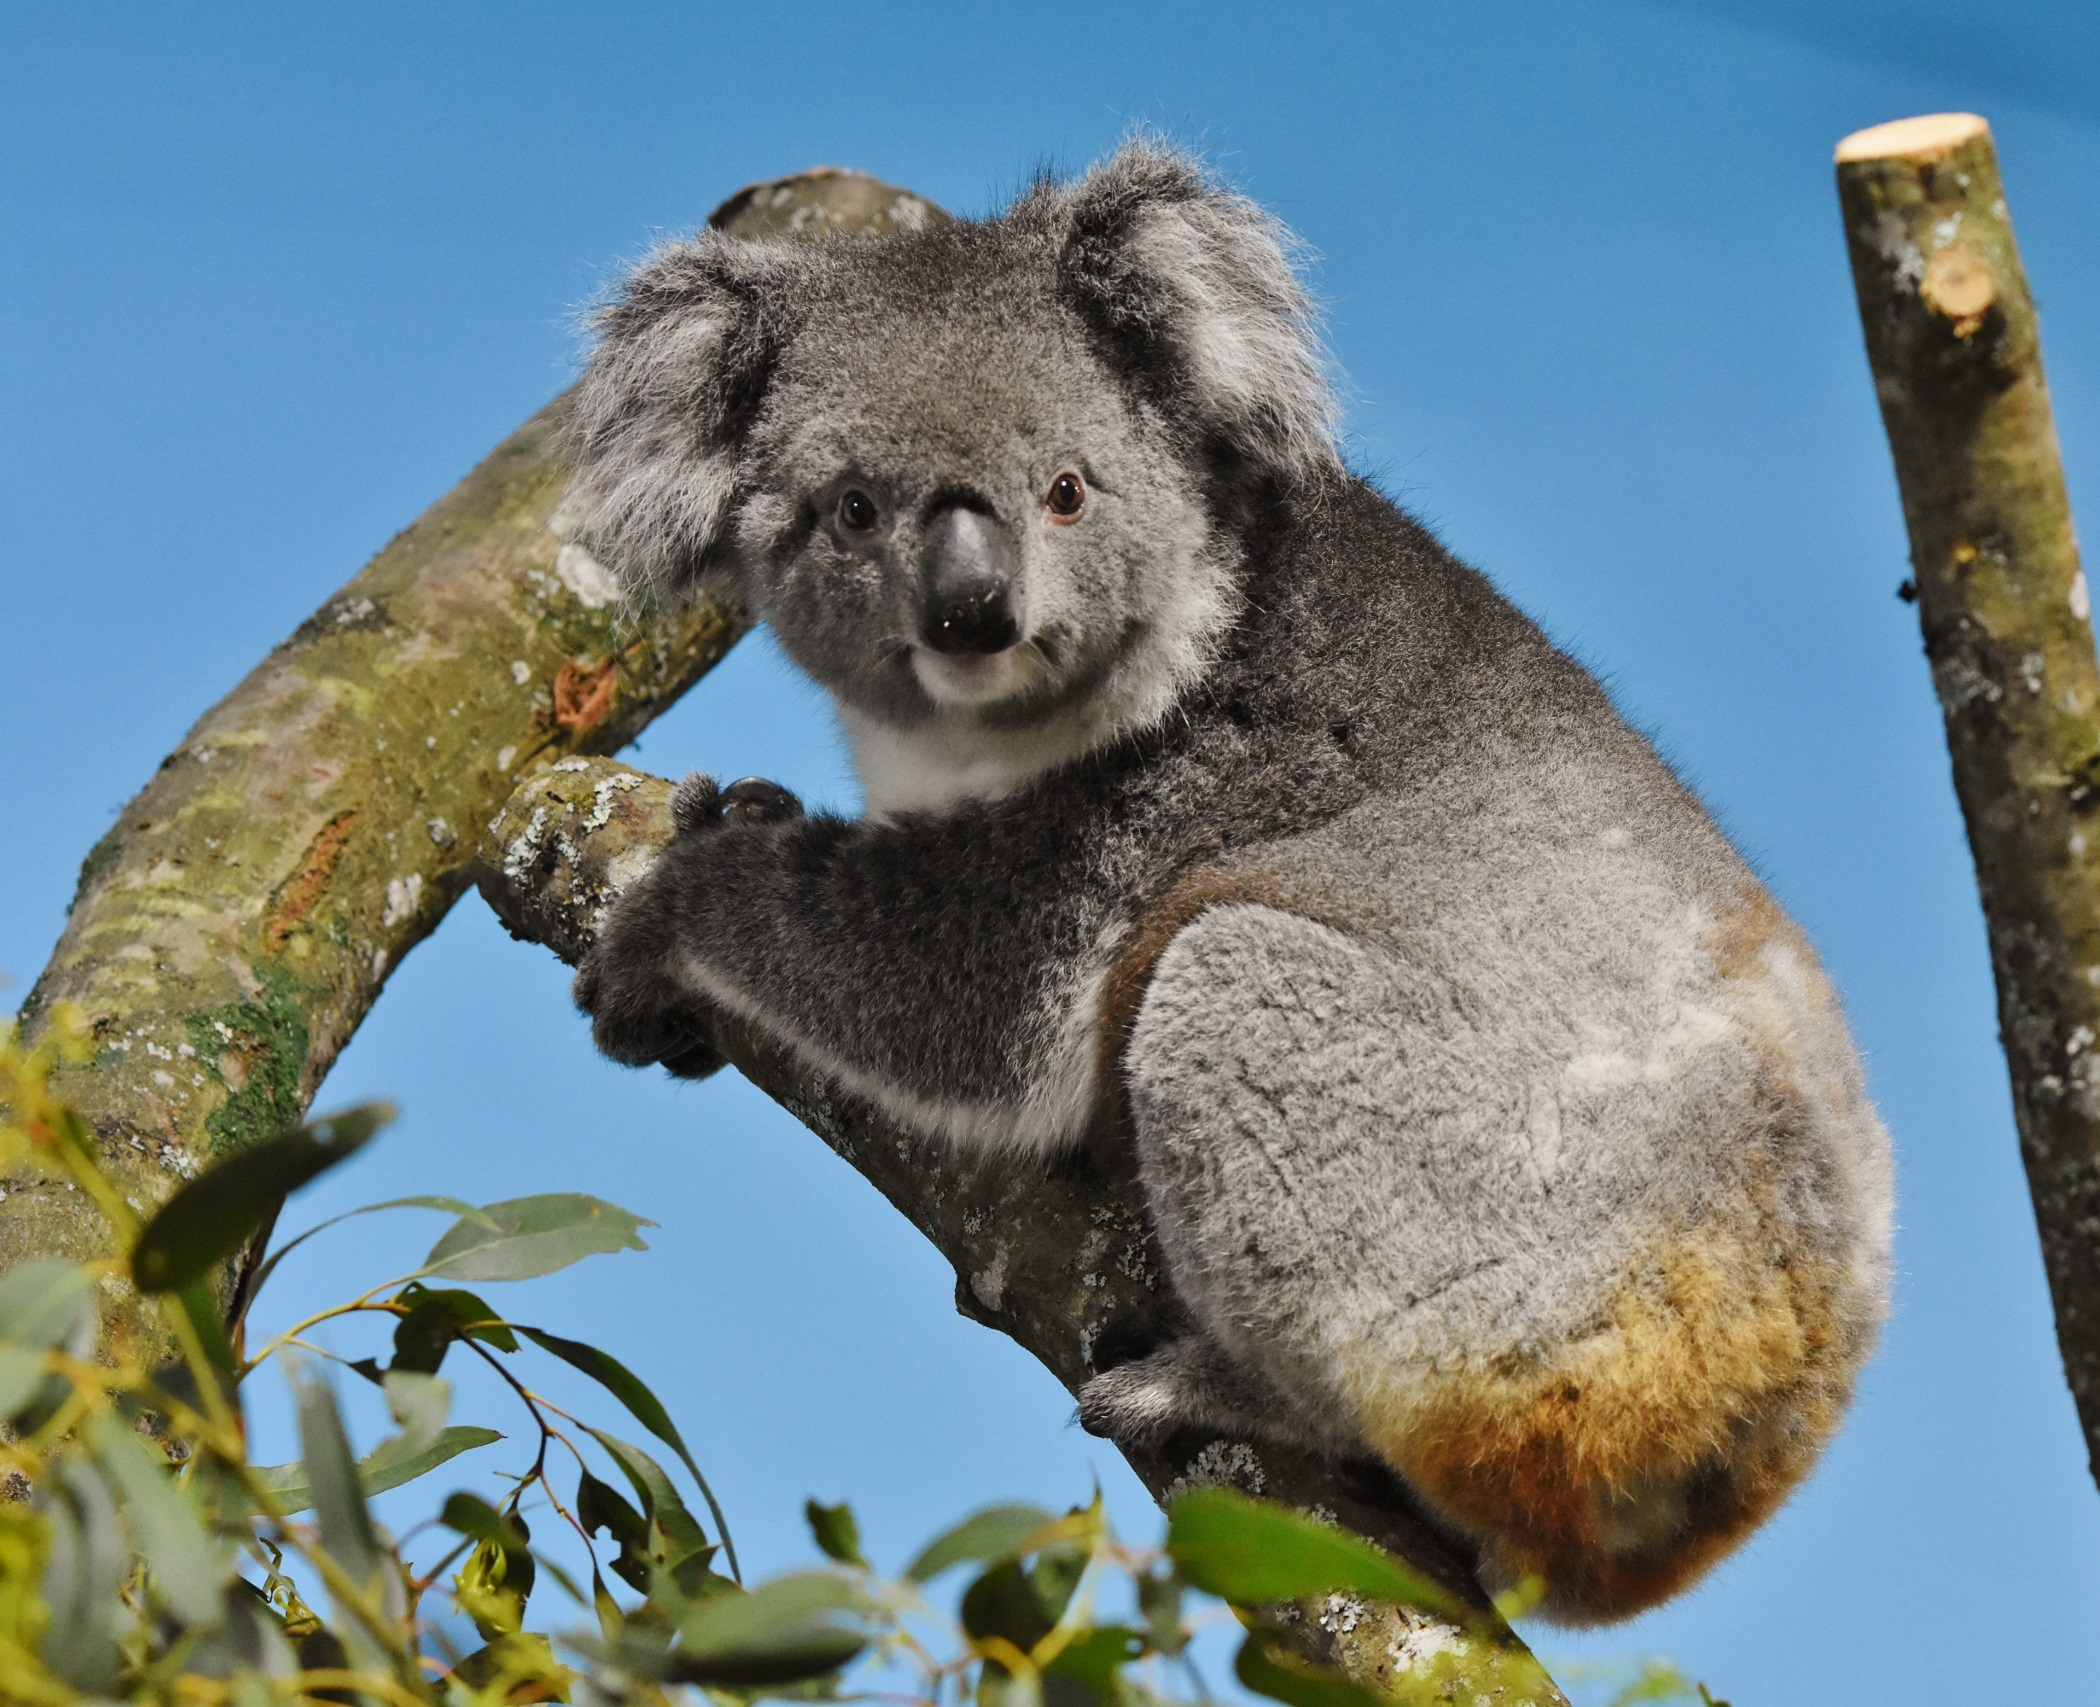 One of the four female koalas settling into her new home at Longleat